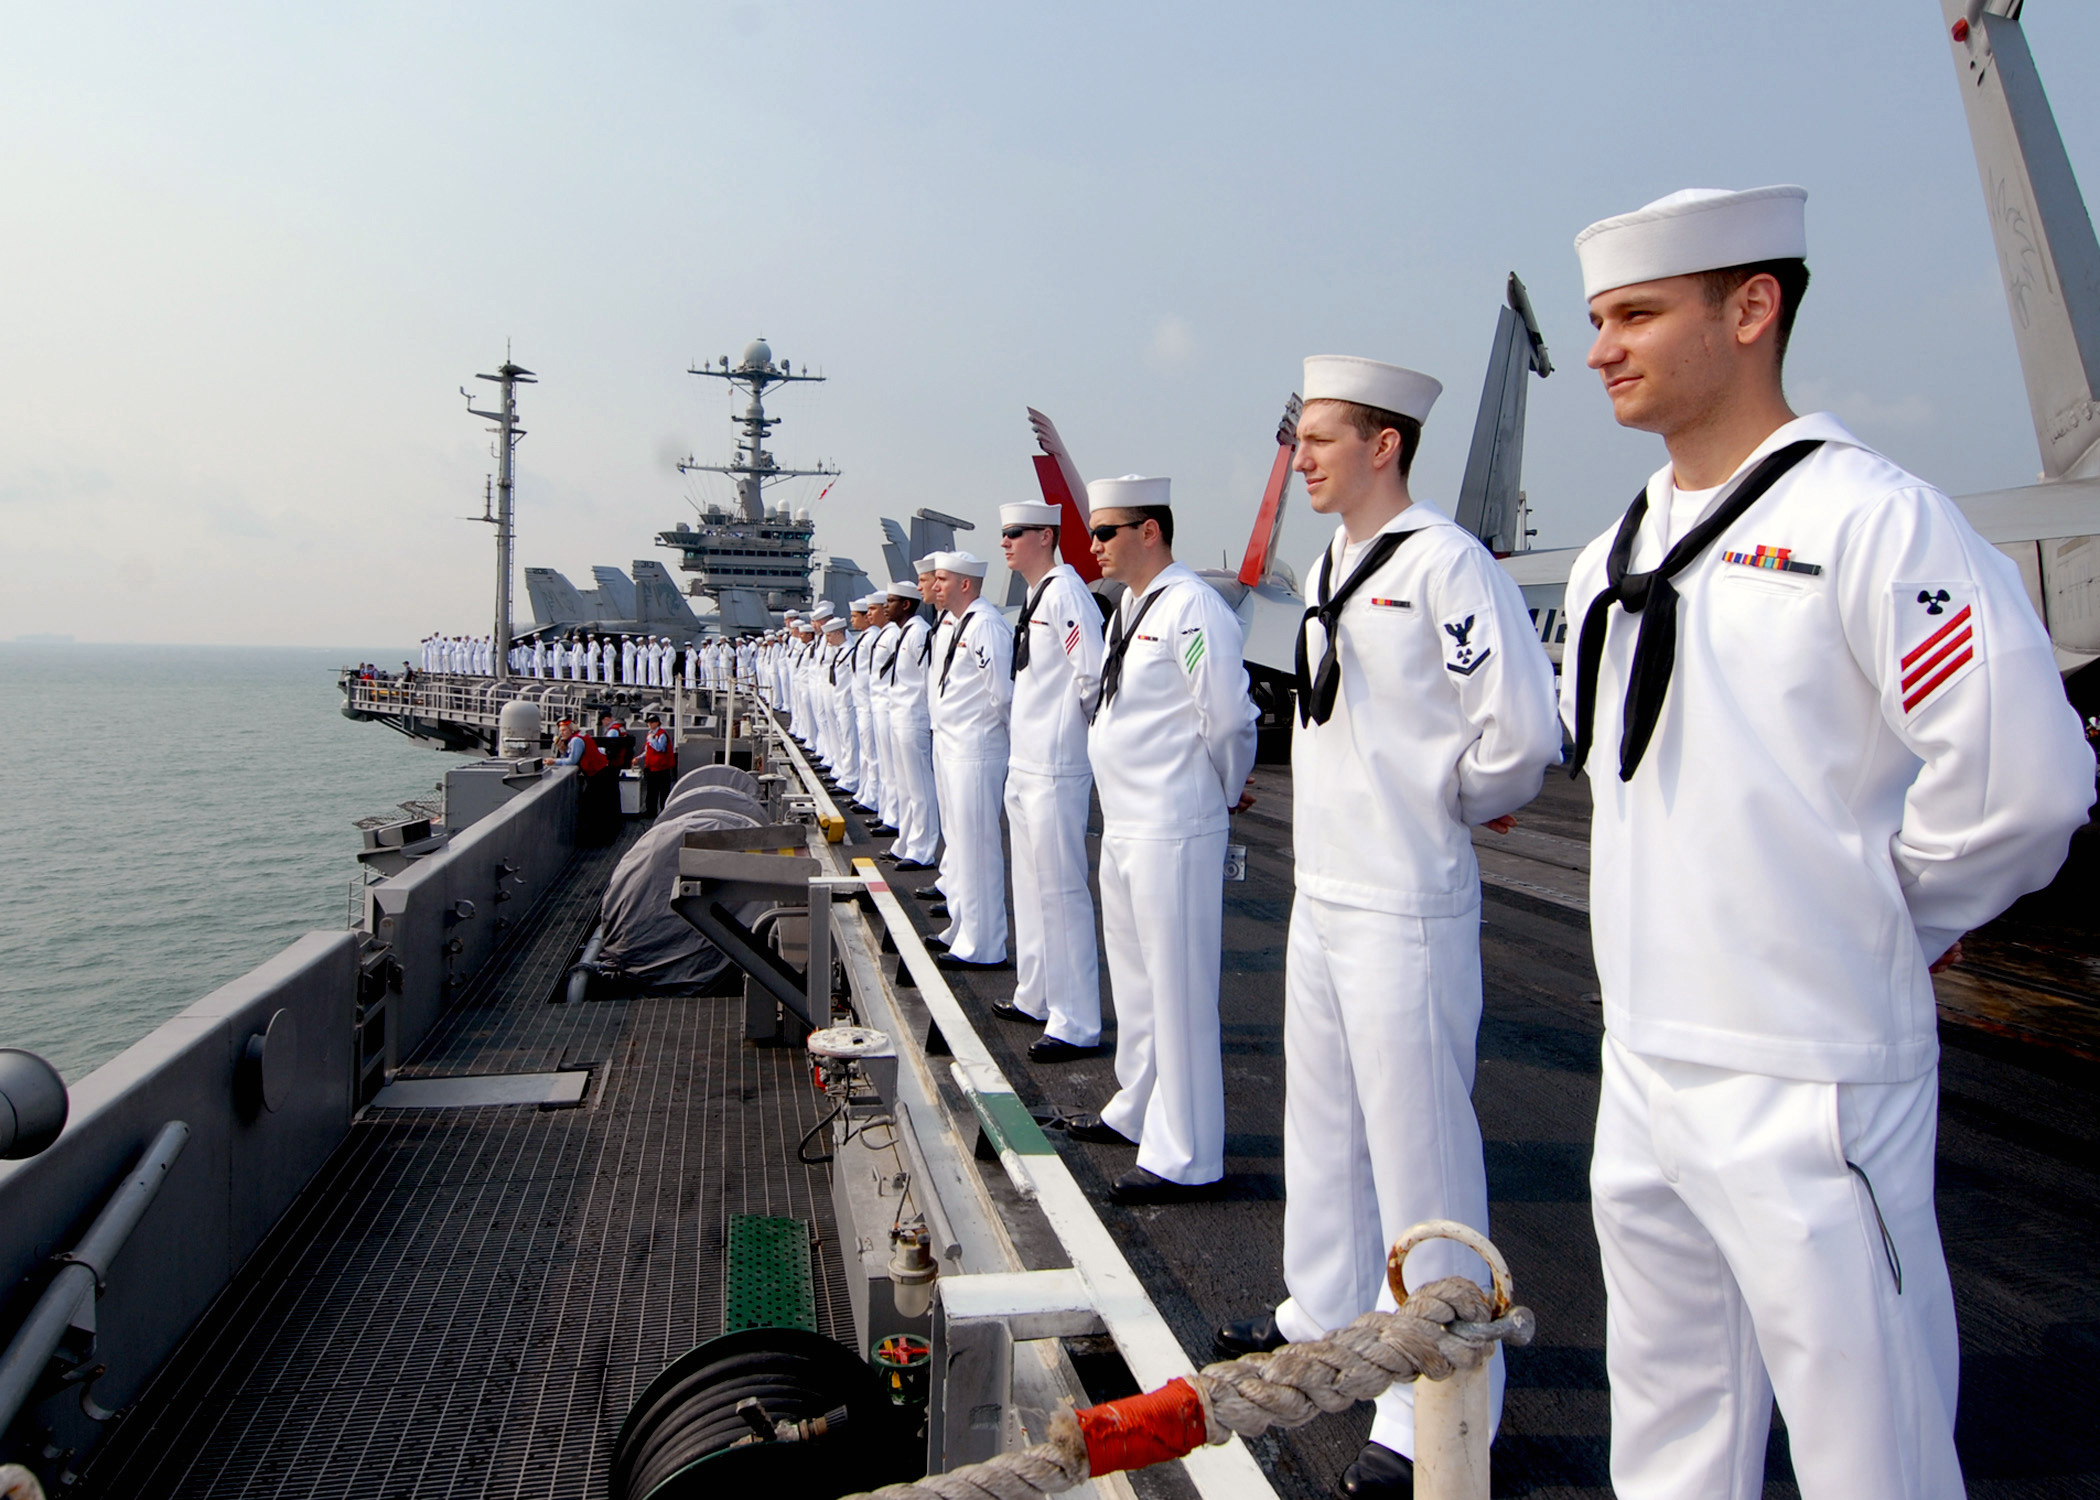 US Navy 090802-N-6720T-045 Sailors man the rails aboard the aircraft carrier USS George Washington CVN 73 while underway off the coast of Singapore